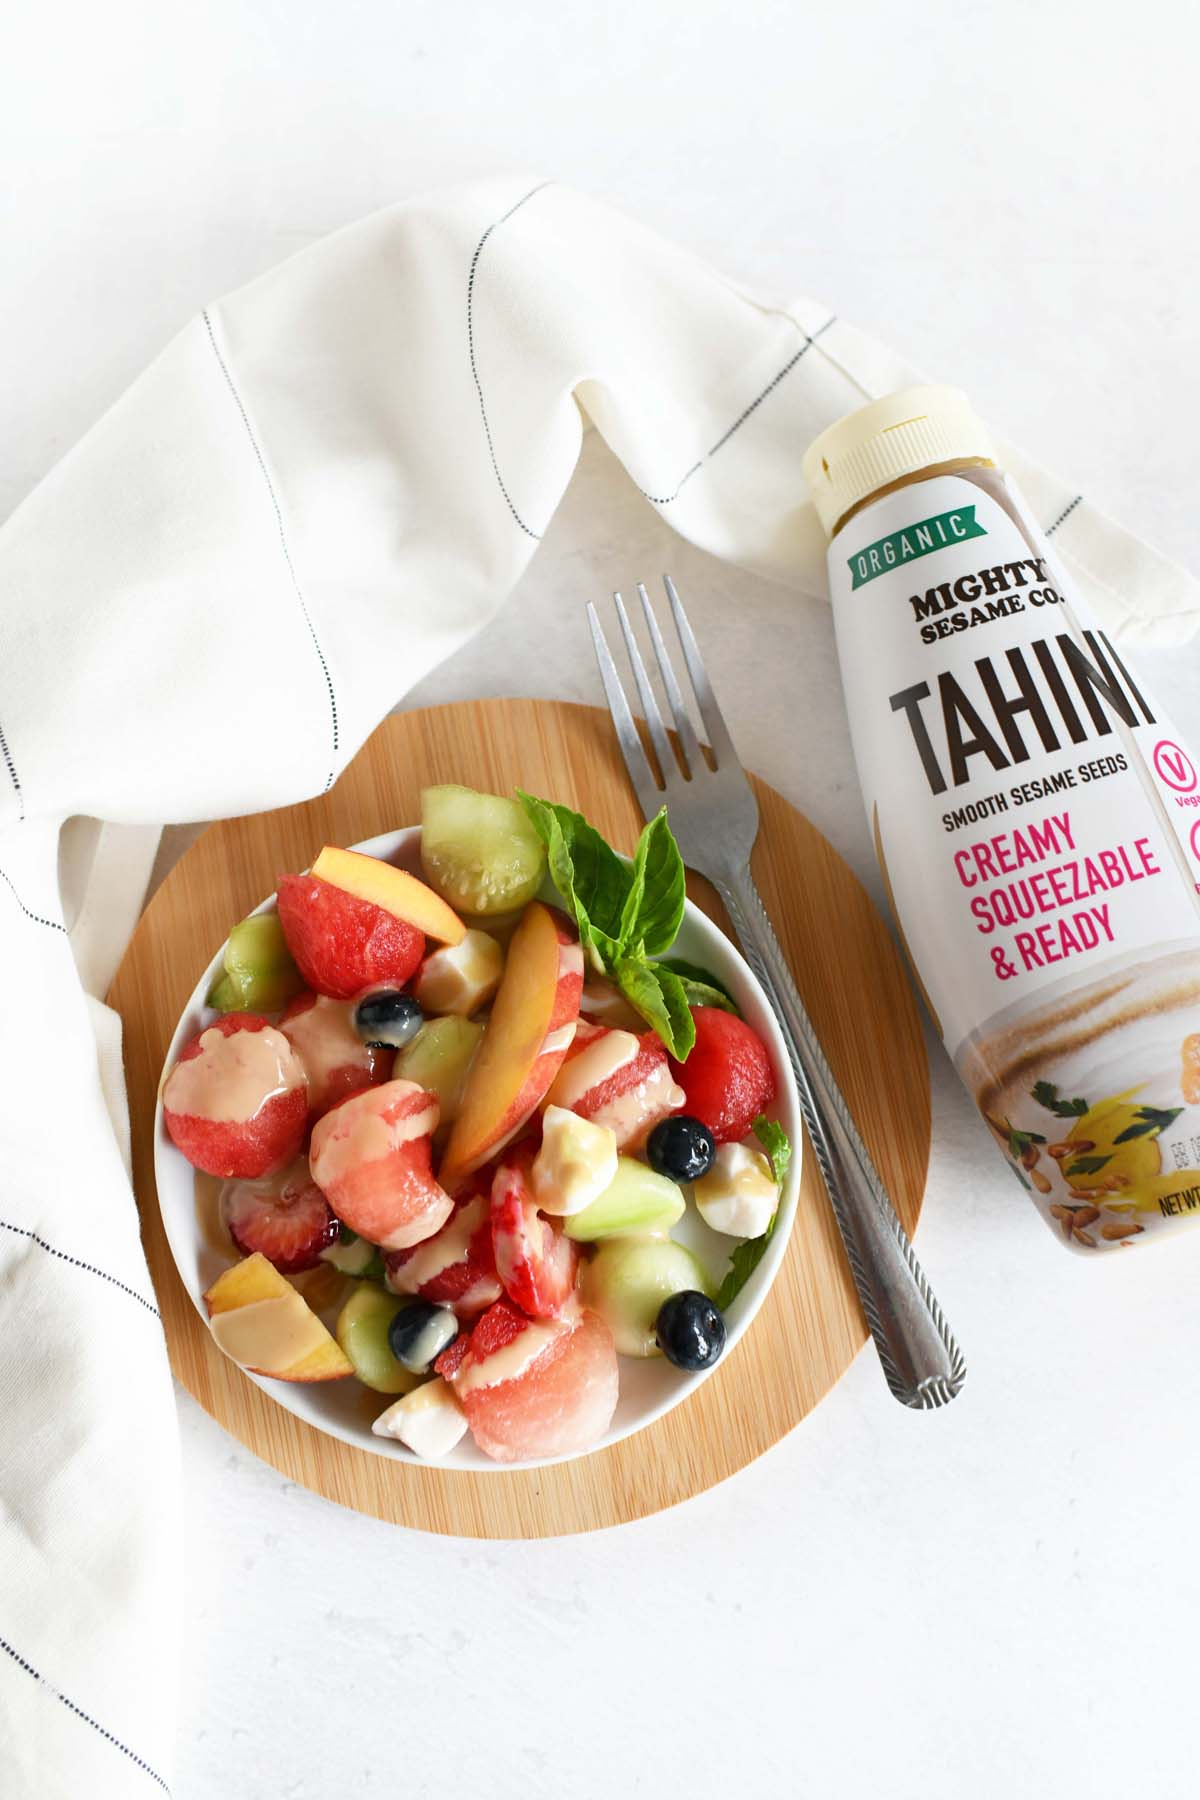 Tahini Fruit Salad in a small white plate with a fork.